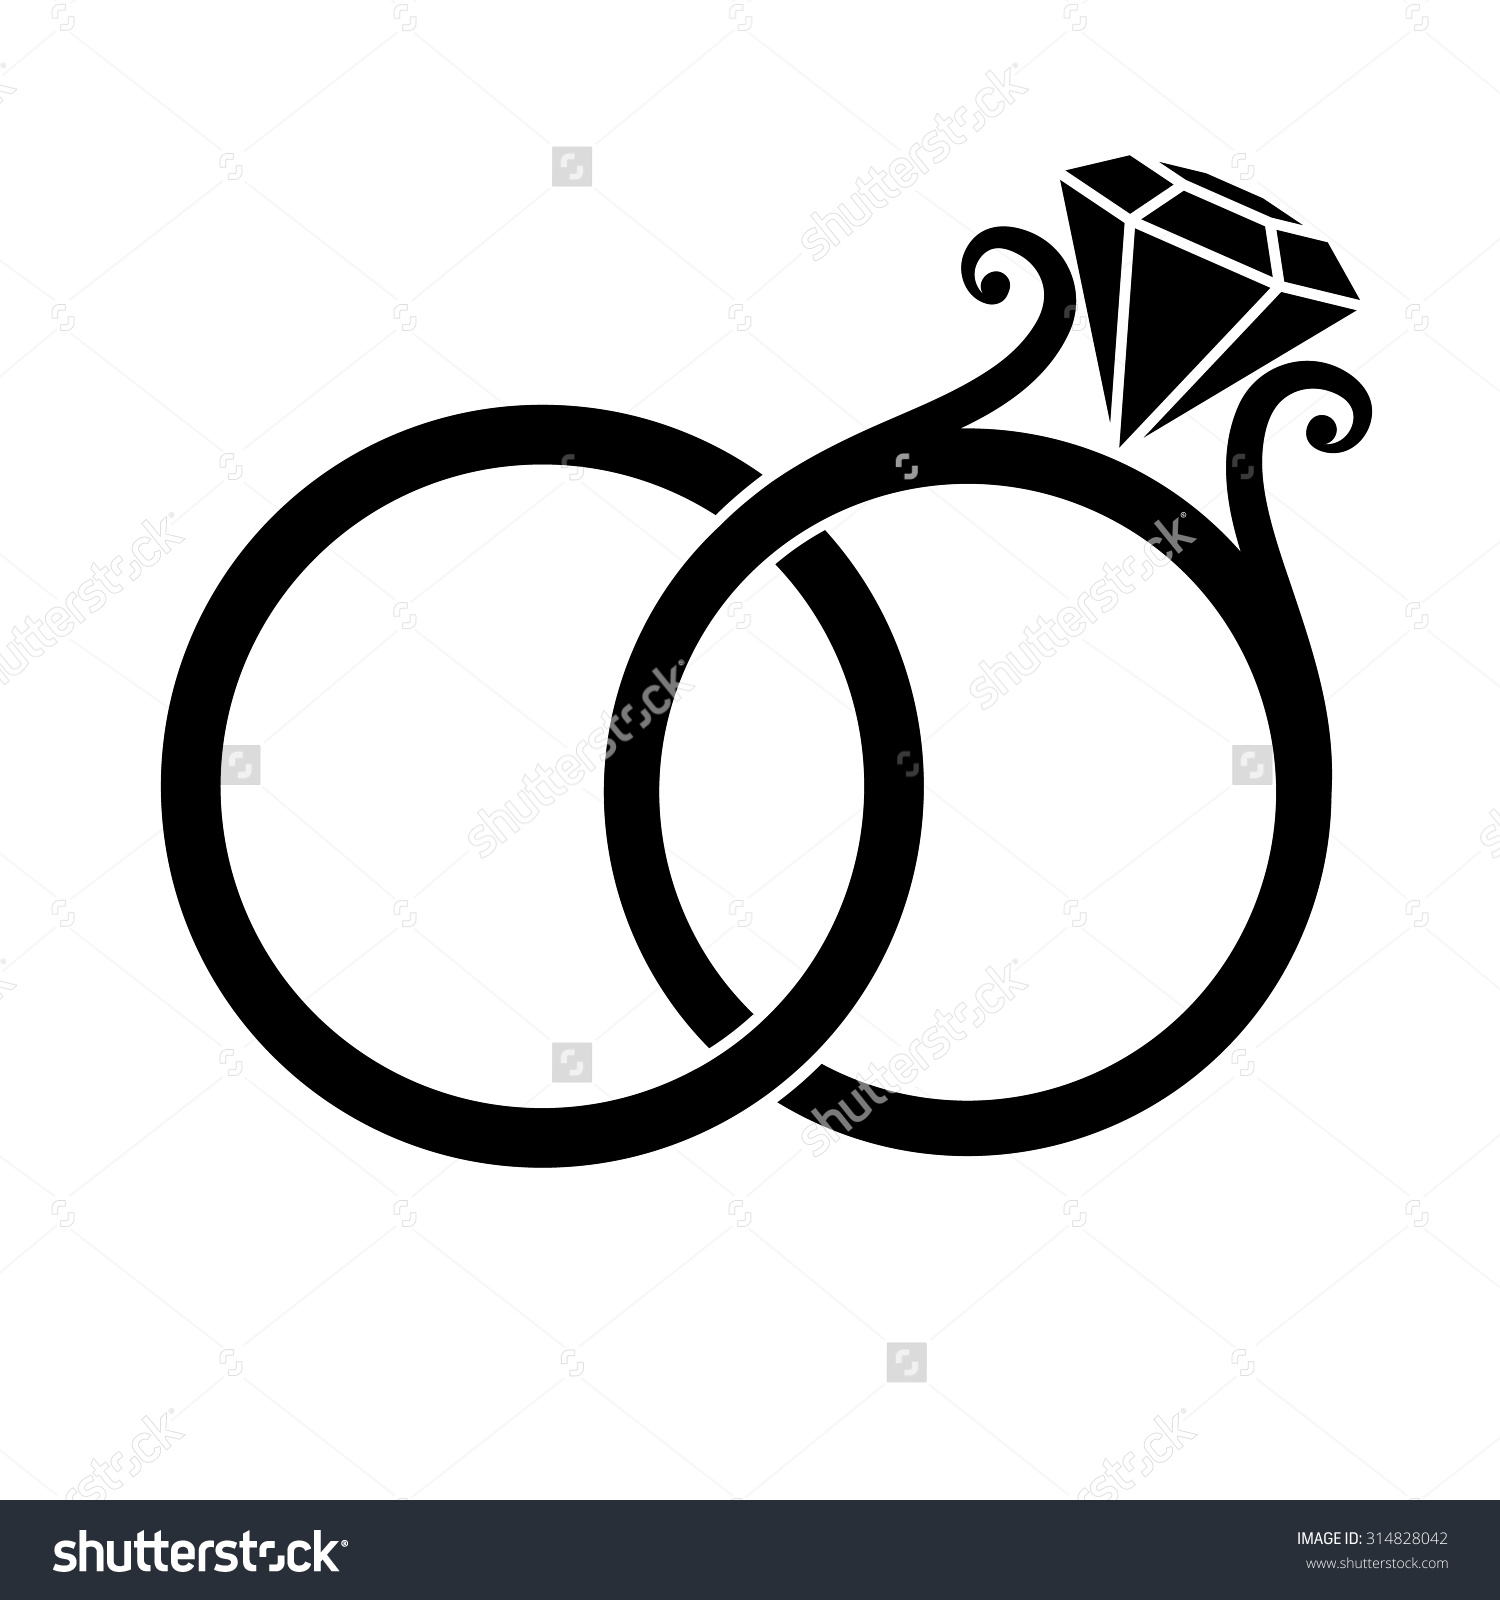 Ring clipart two Rings Wedding Wedding Clipart Two